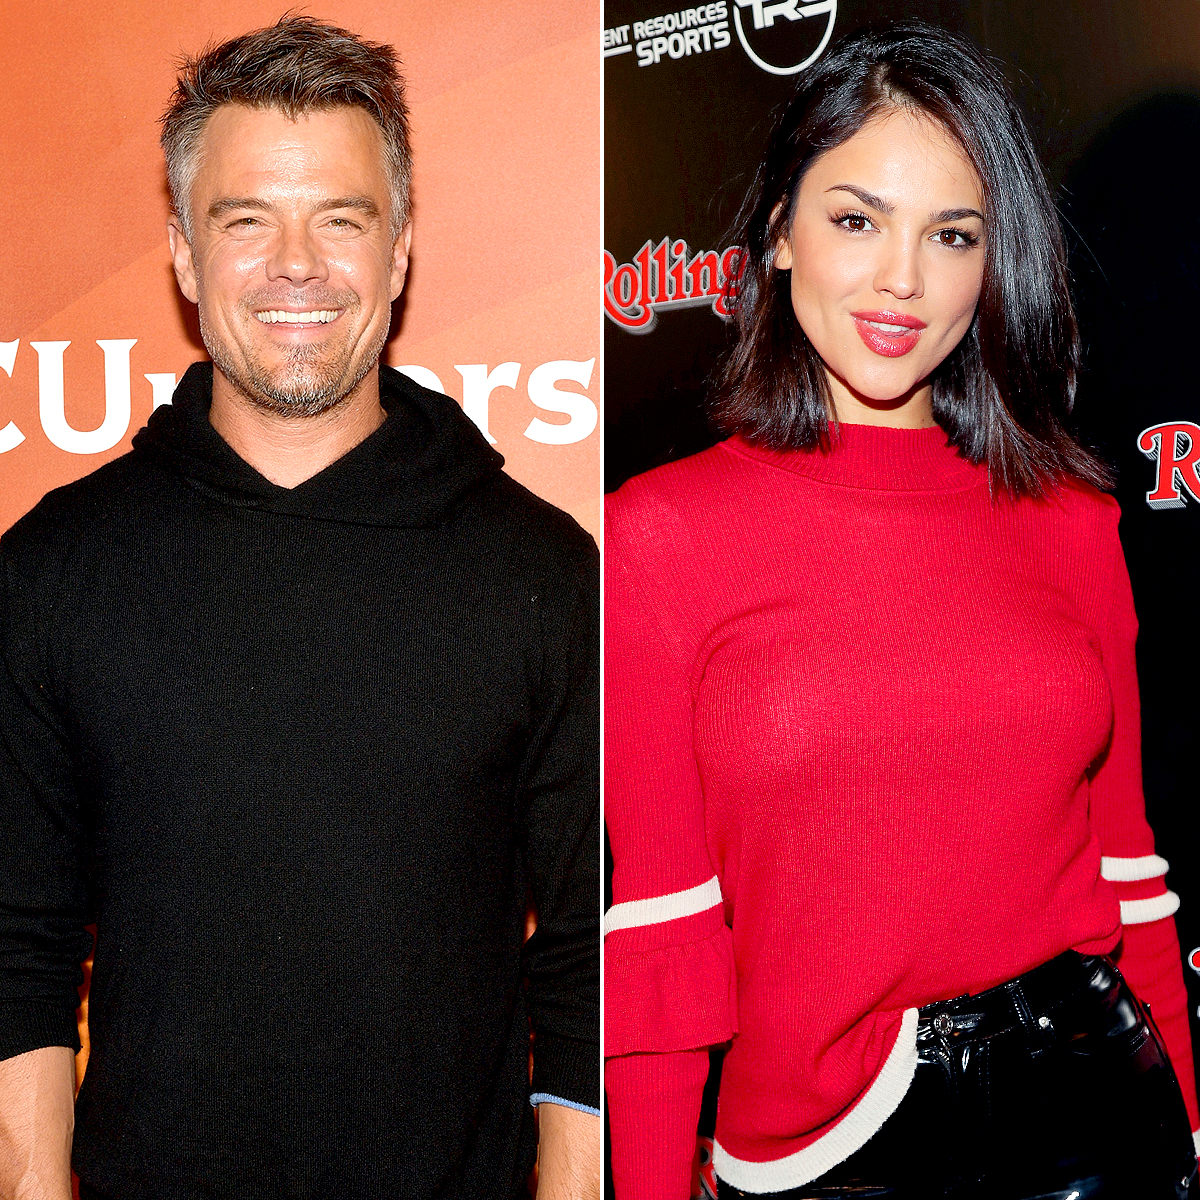 Josh Duhamel Is Dating Eiza Gonzalez After Fergie Split